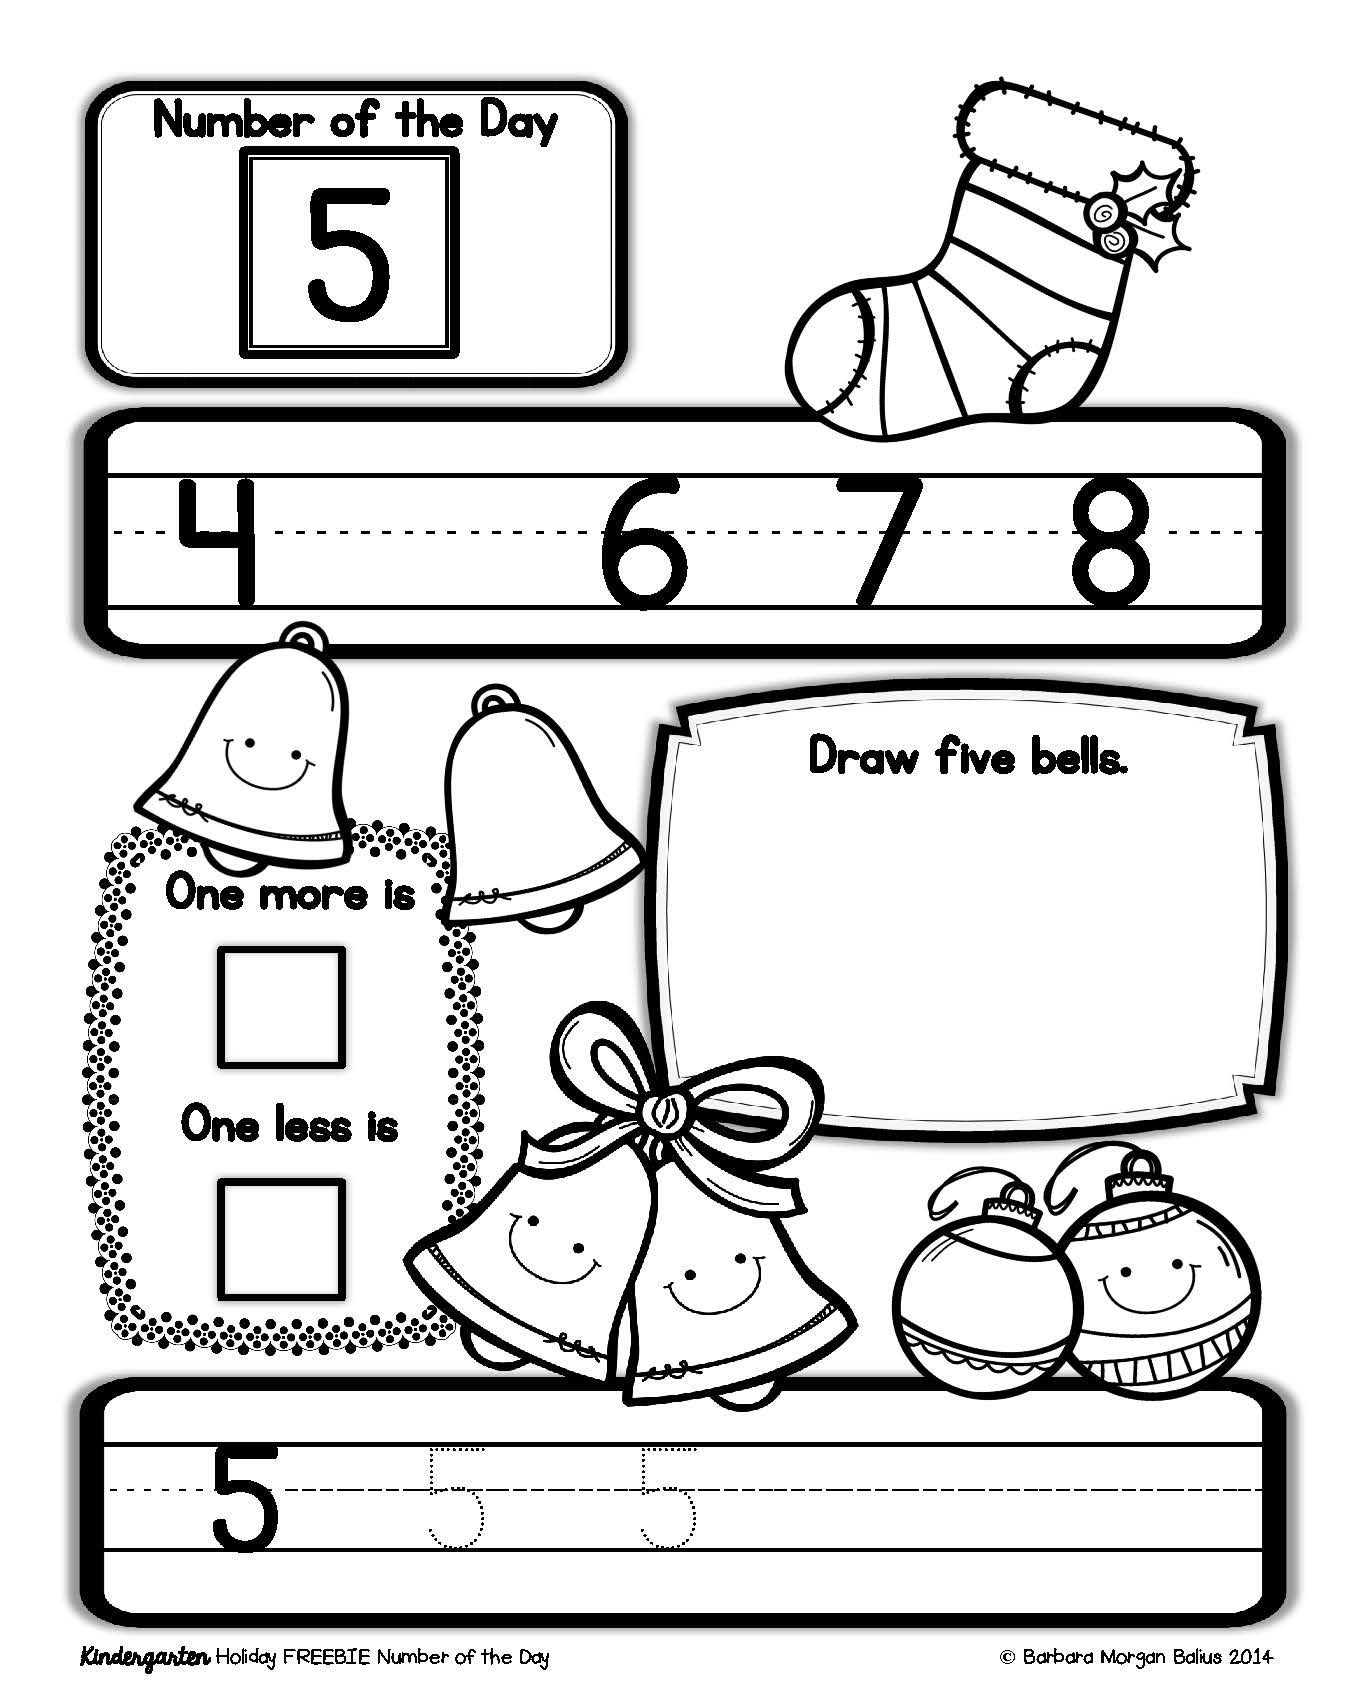 Kindergarten Holiday Number Of The Day Freebie Gives Your